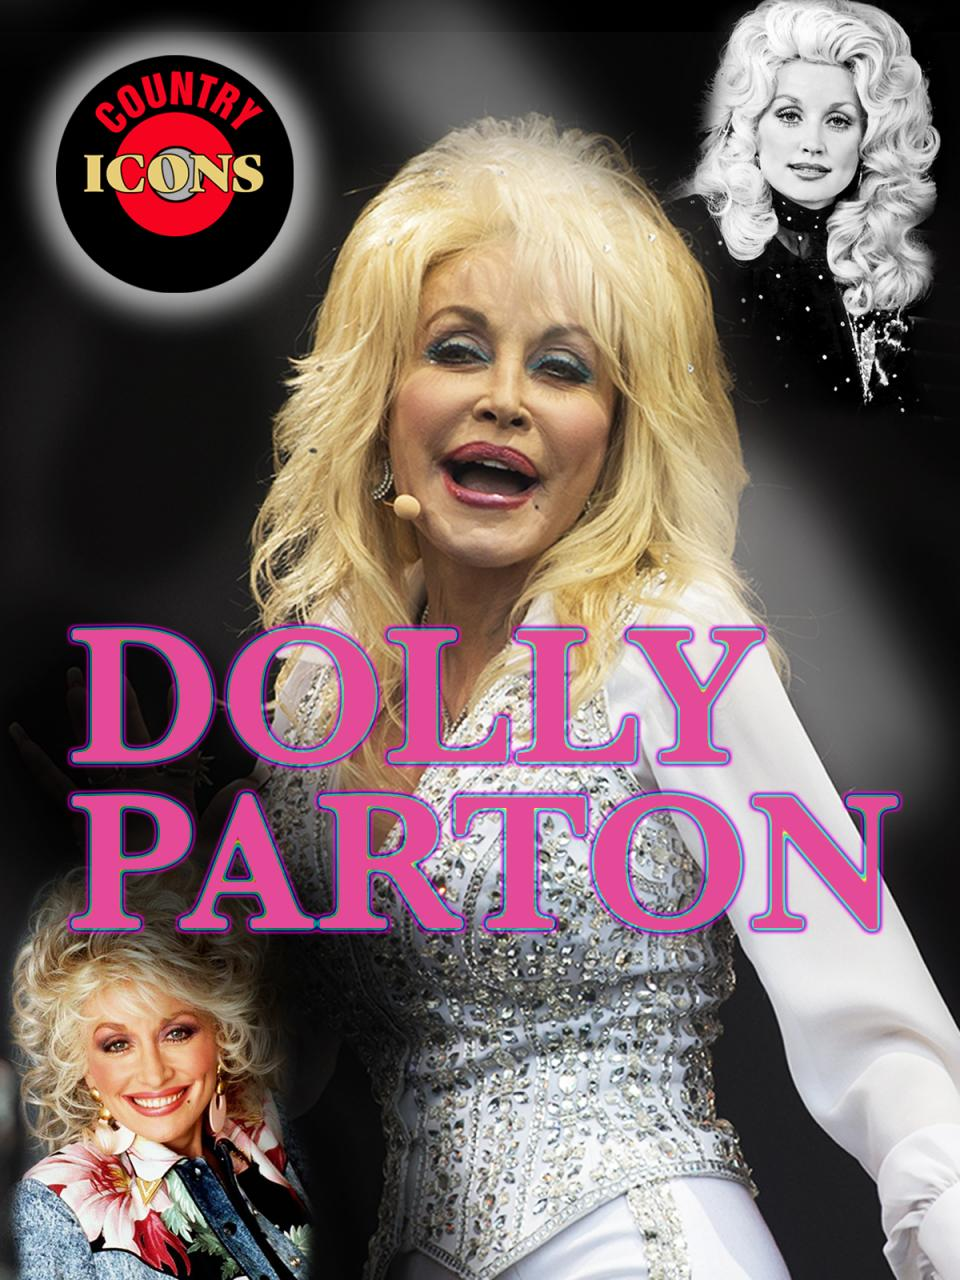 Country Icons: Dolly Parton